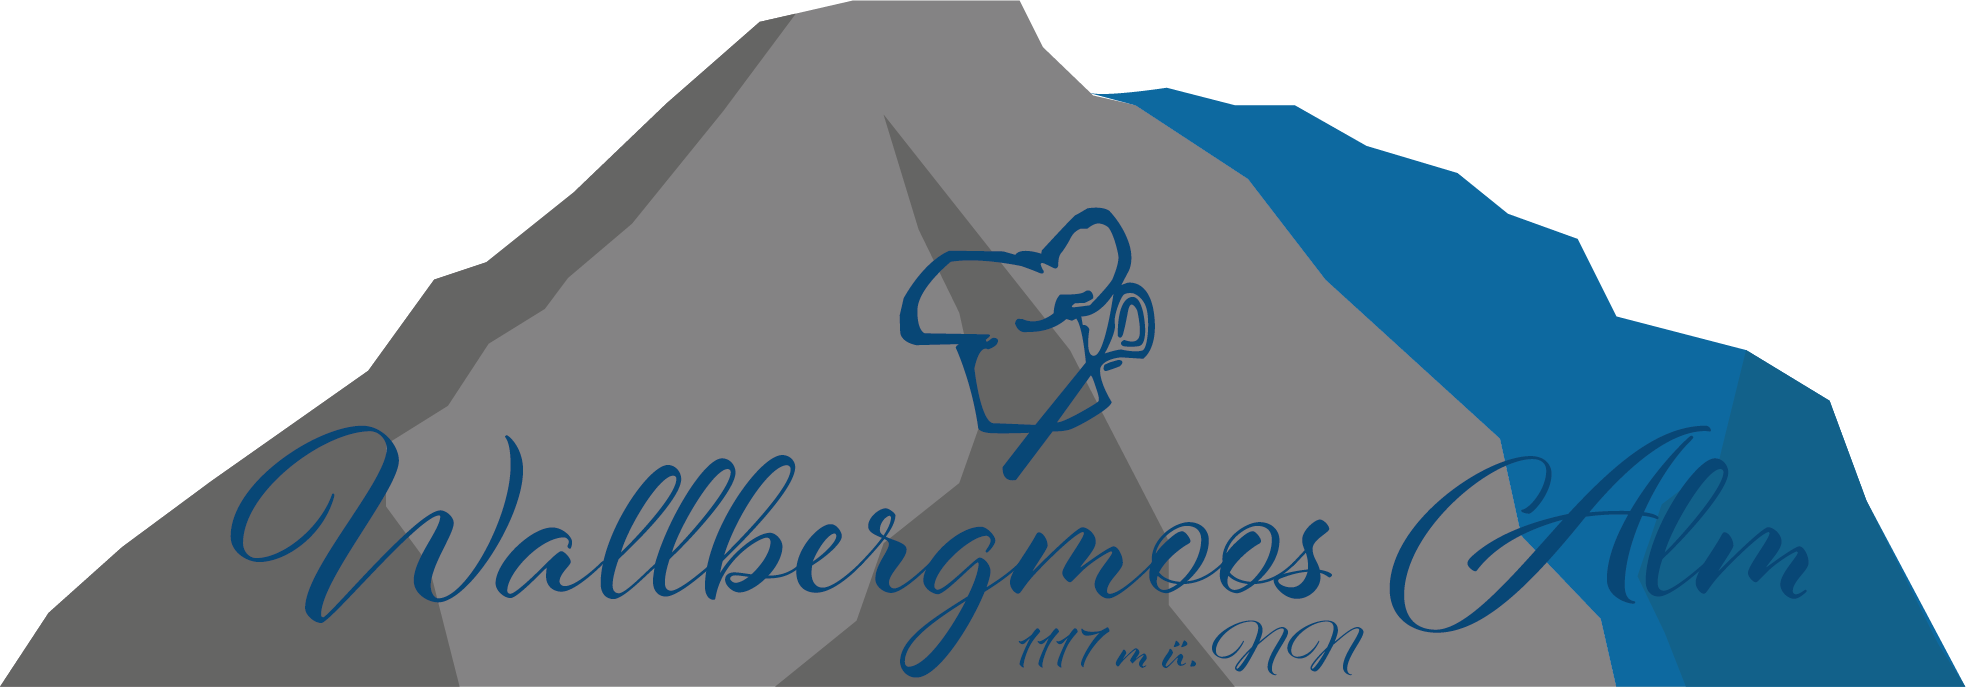 cropped-cropped-cropped-cropped-WallbergmossAlmLogo.png